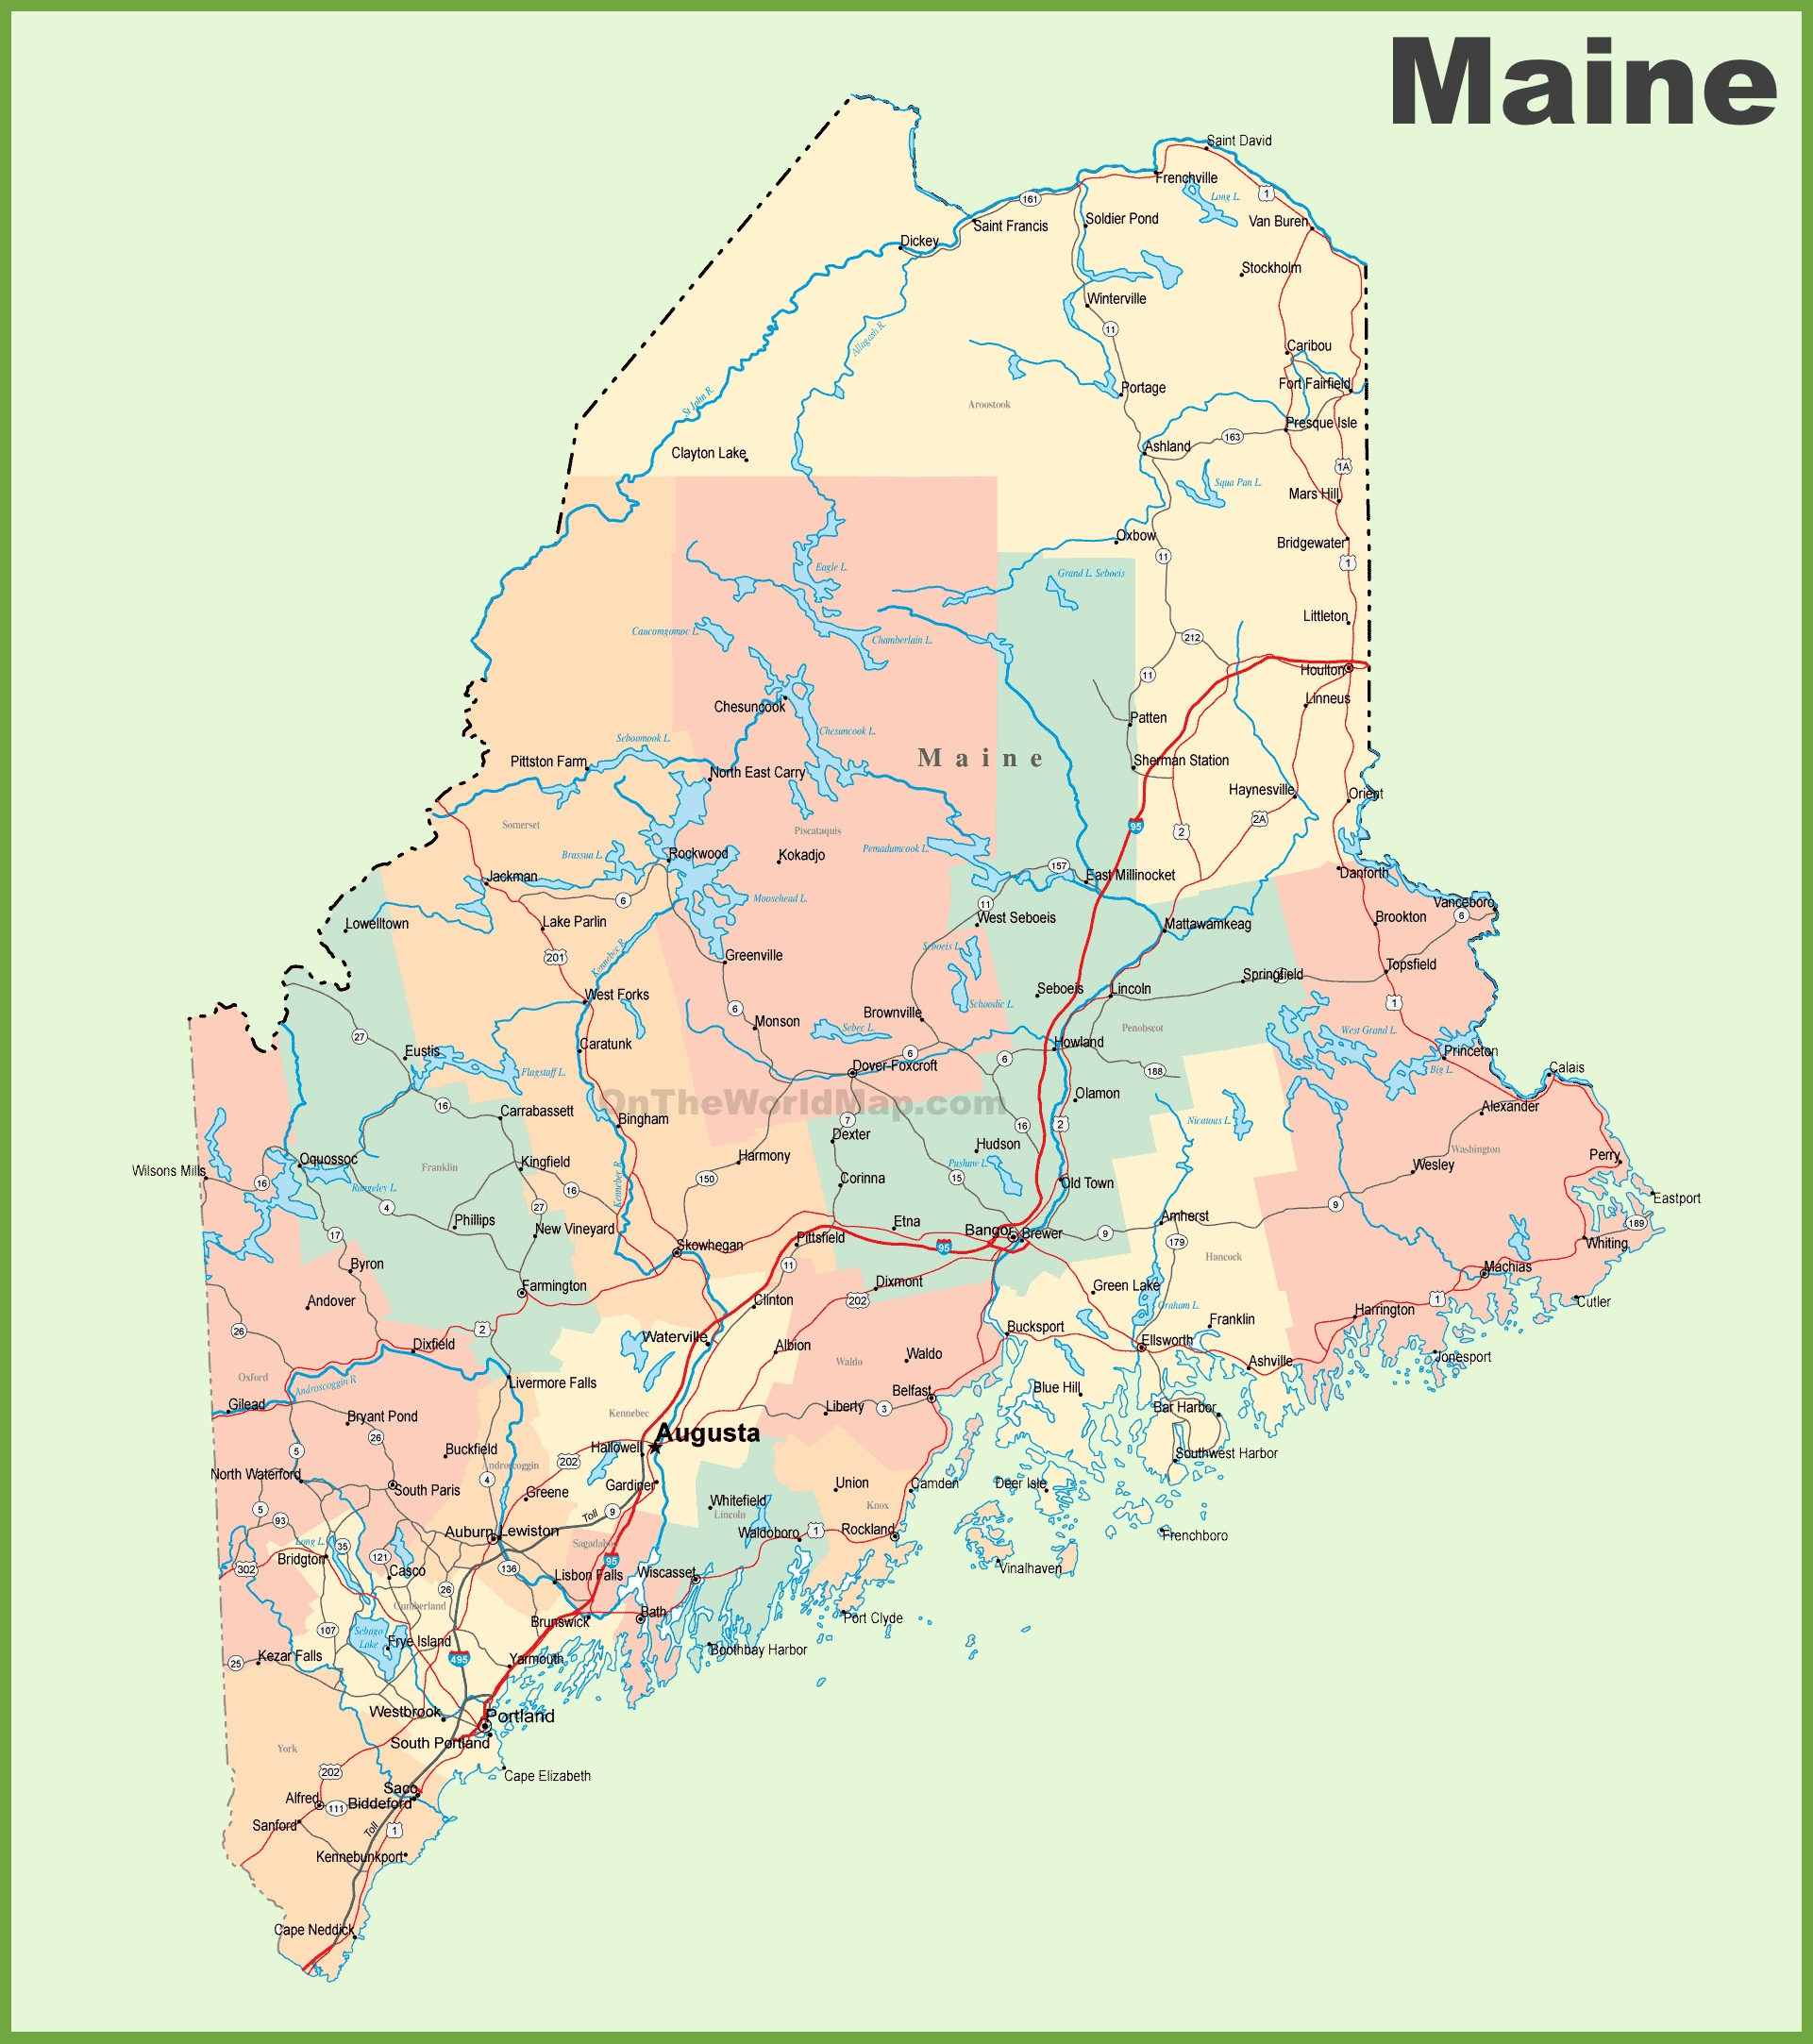 State Map Of Maine.Road Map Of Maine With Cities